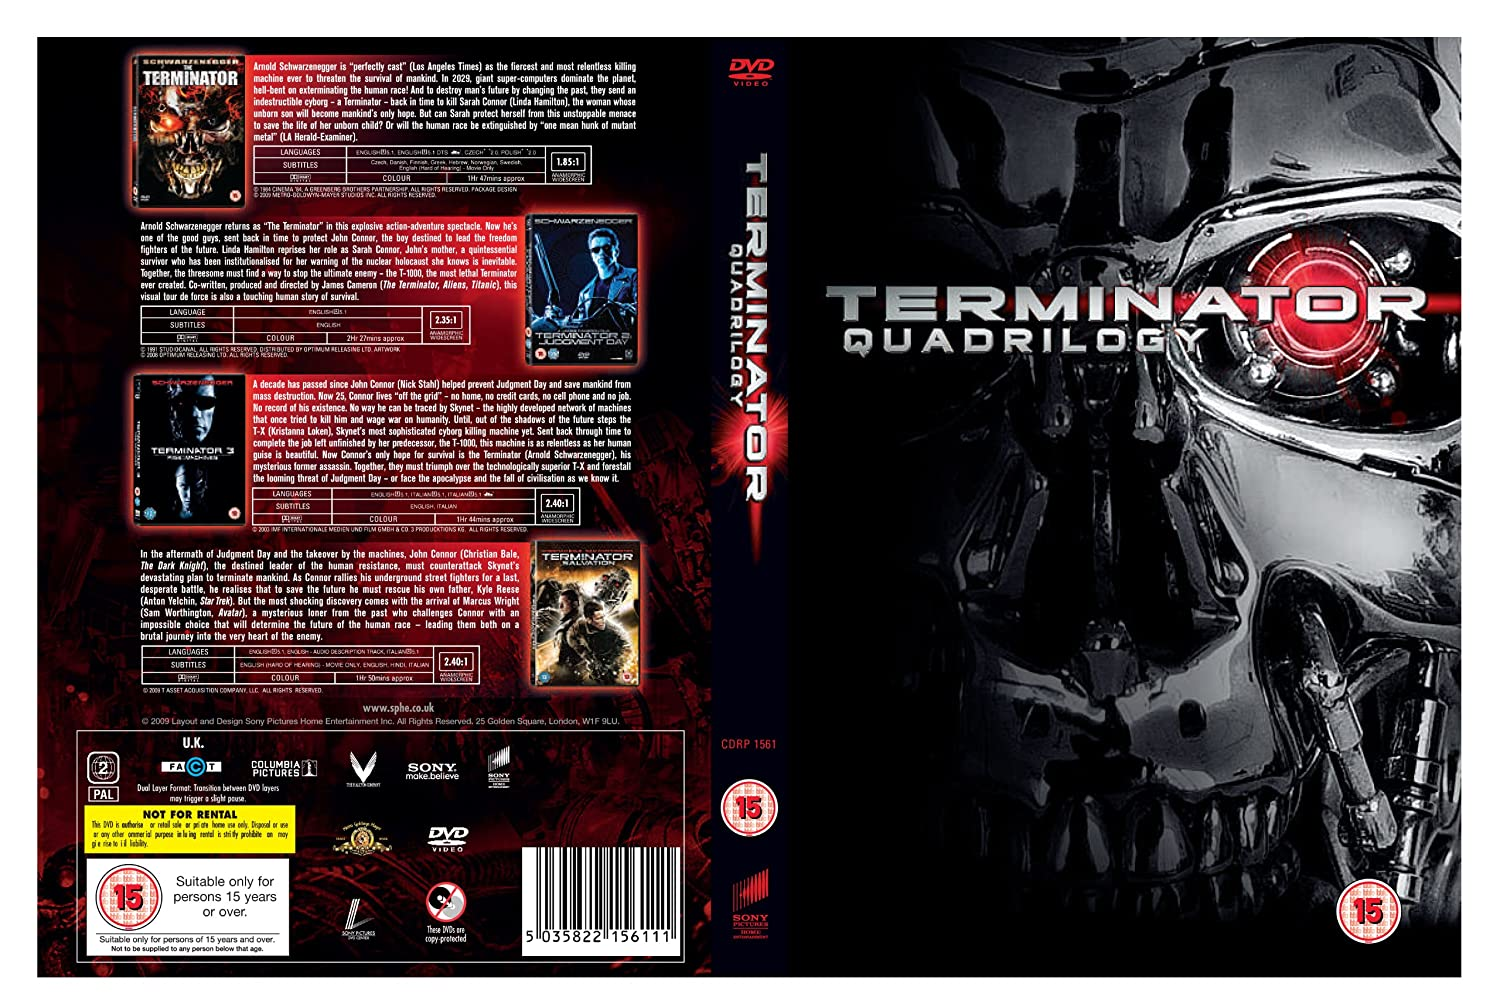 The Terminator 1984 Wide Screen DVD Front Cover id3566 | Covers ...